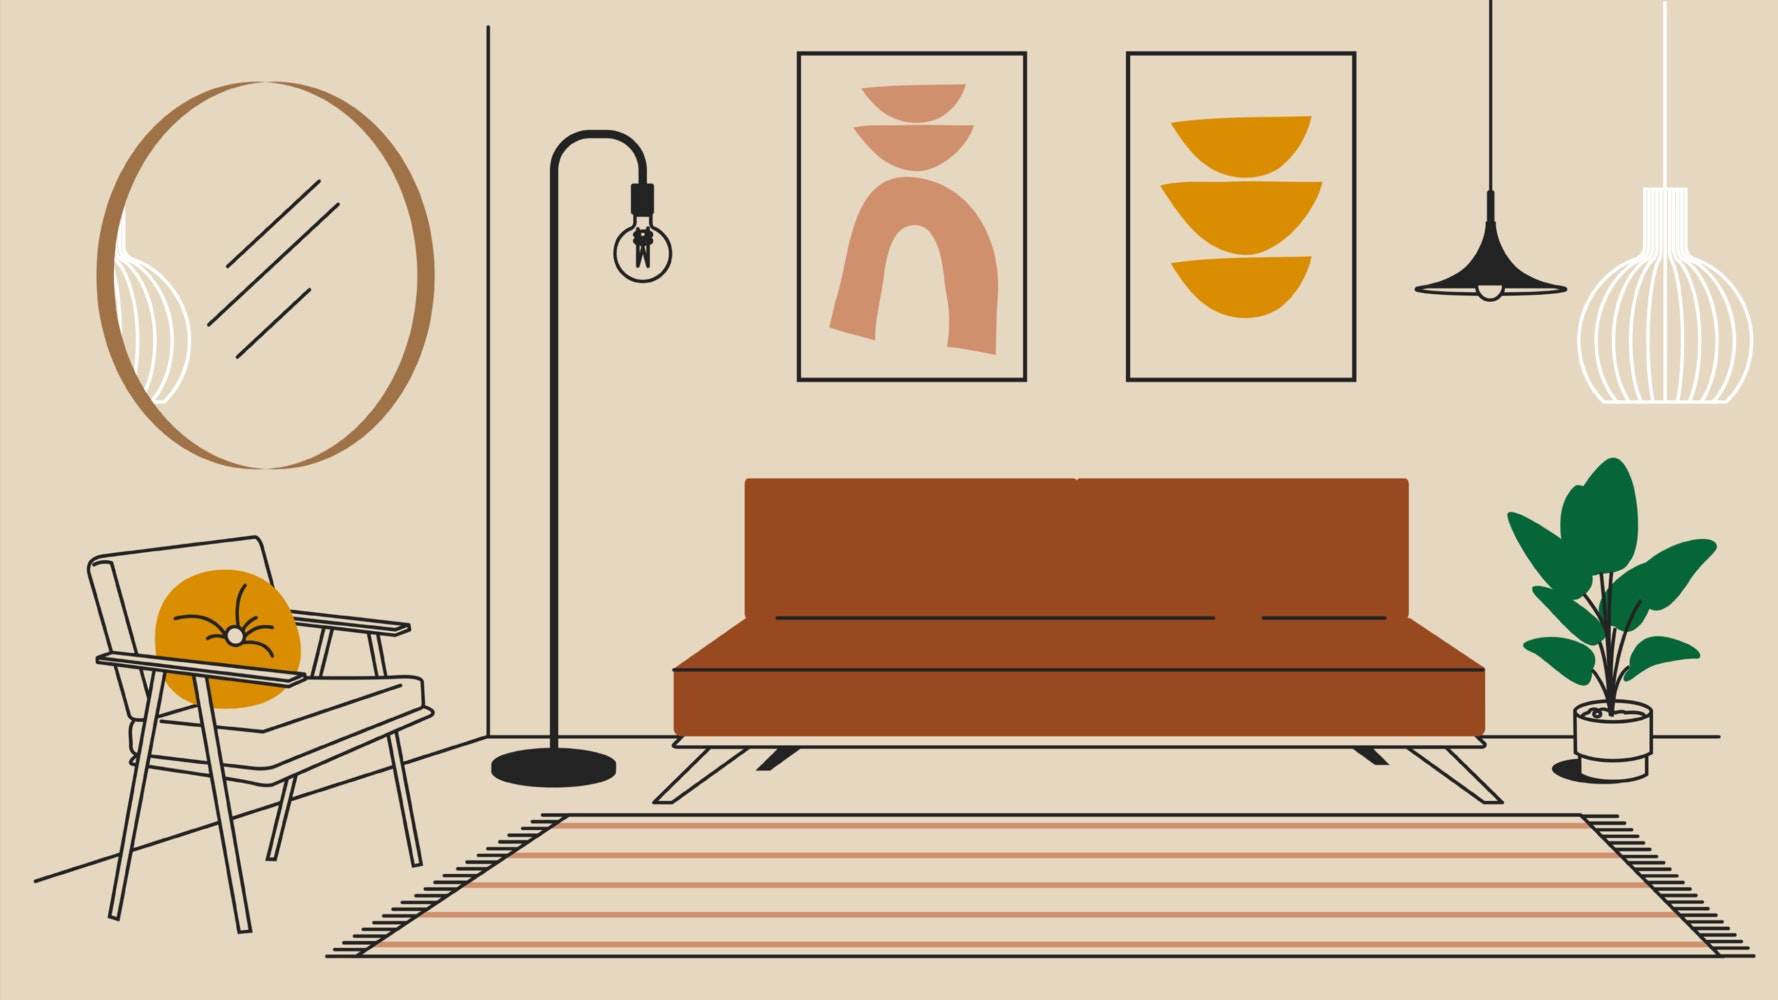 Minimalist living room furniture including a contemporary couch, floor lamp, and arm chair